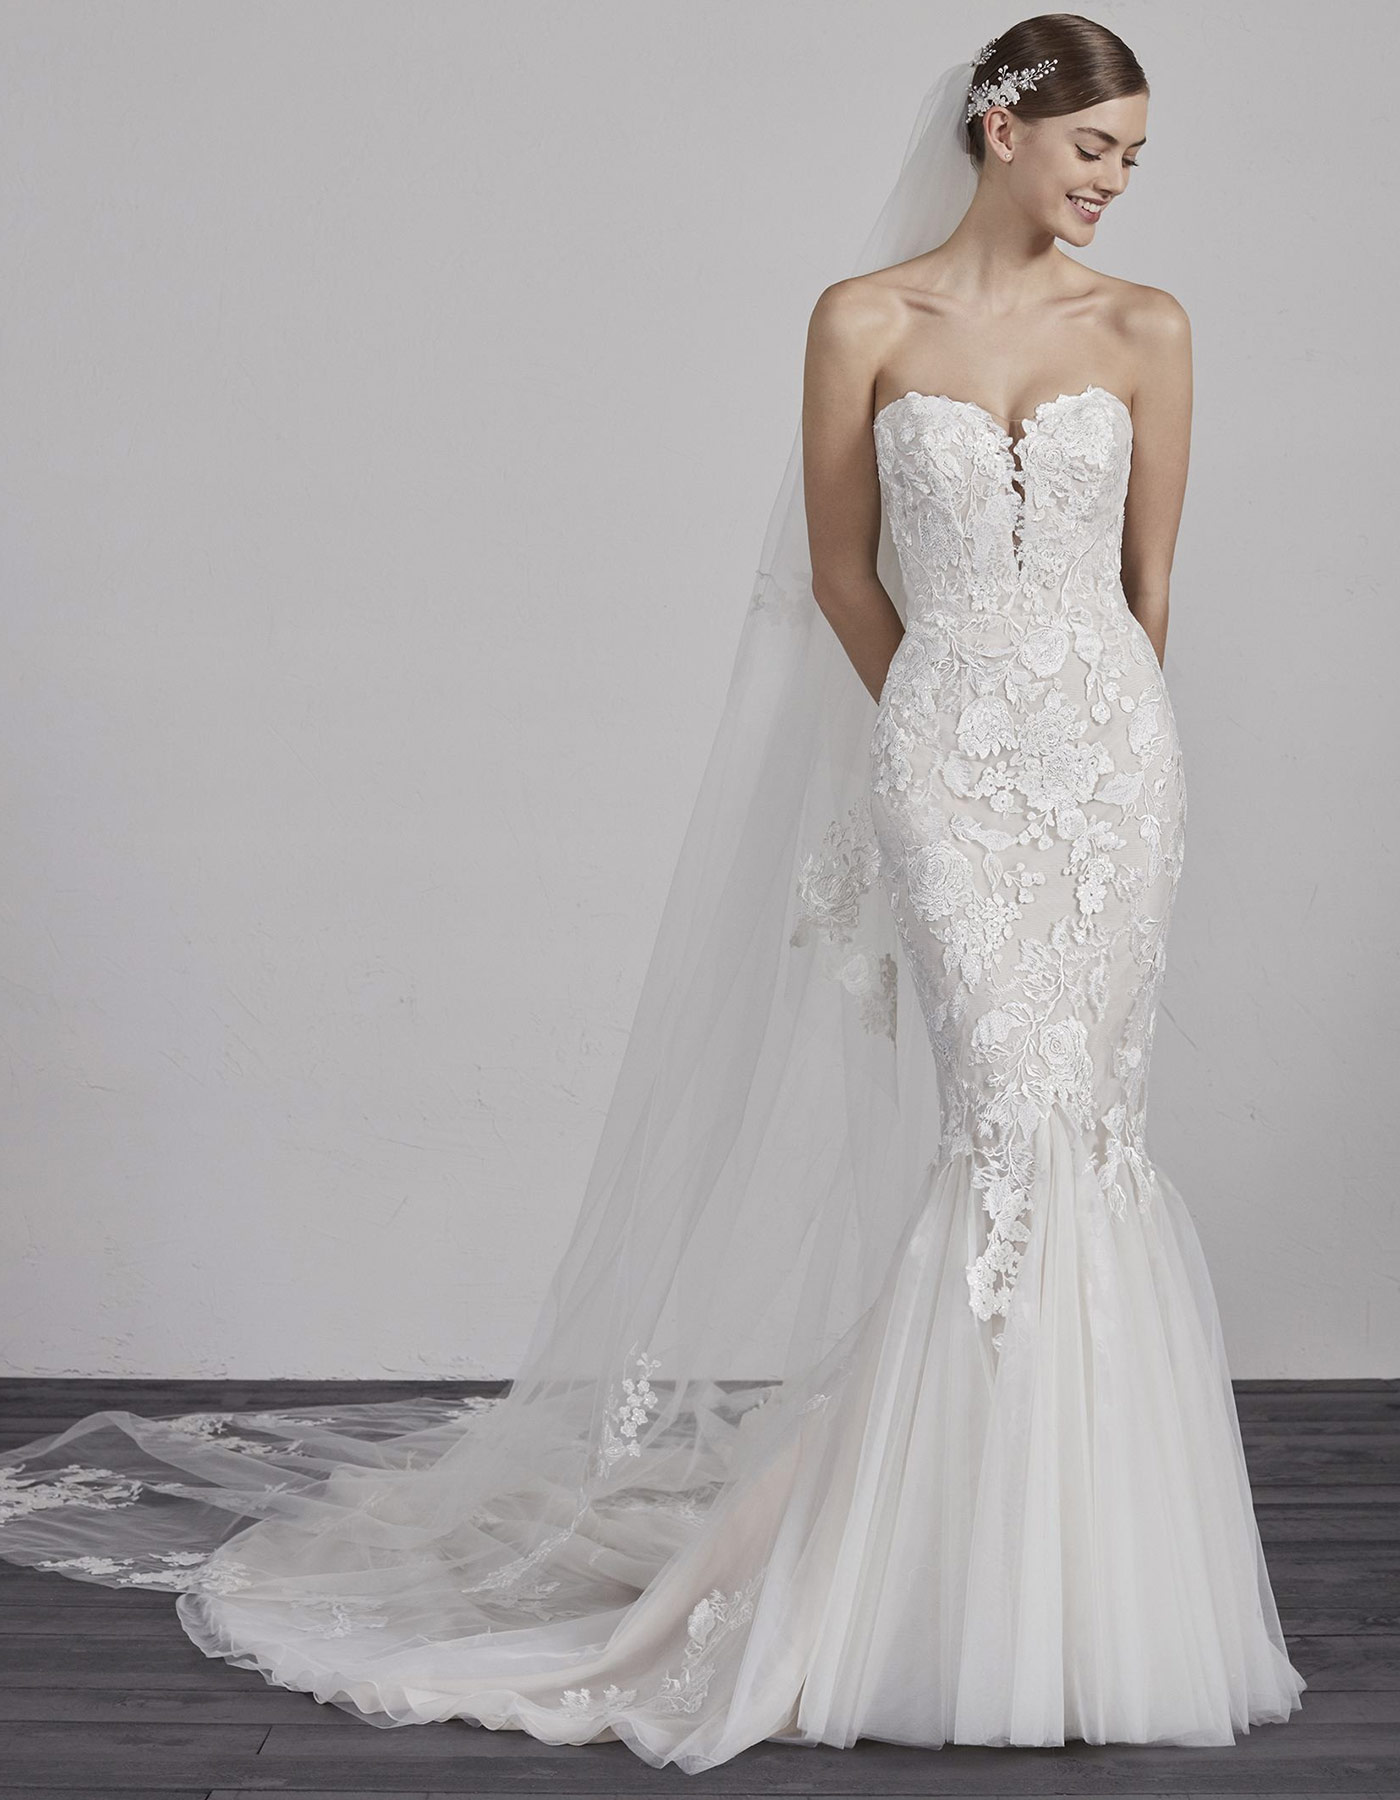 Ercilia By Pronovias Fitted Mermaid Style Wedding Dress